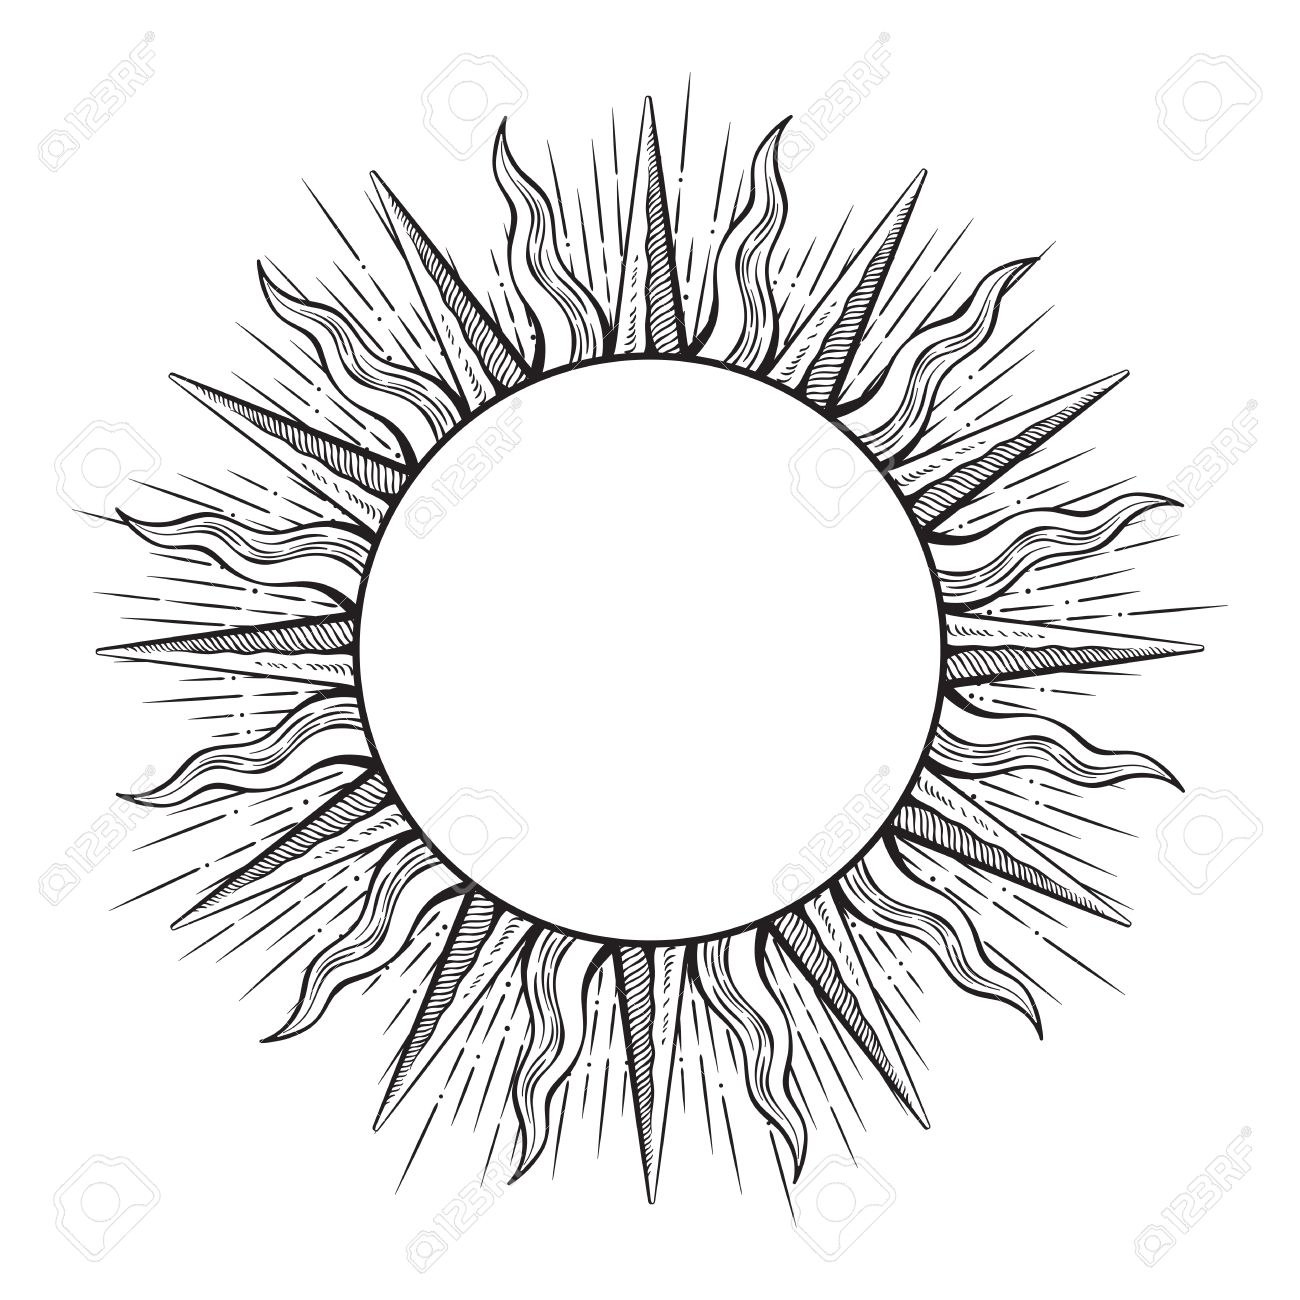 hight resolution of 1300x1300 hand drawn etching style frame in a shape of sun rays vector